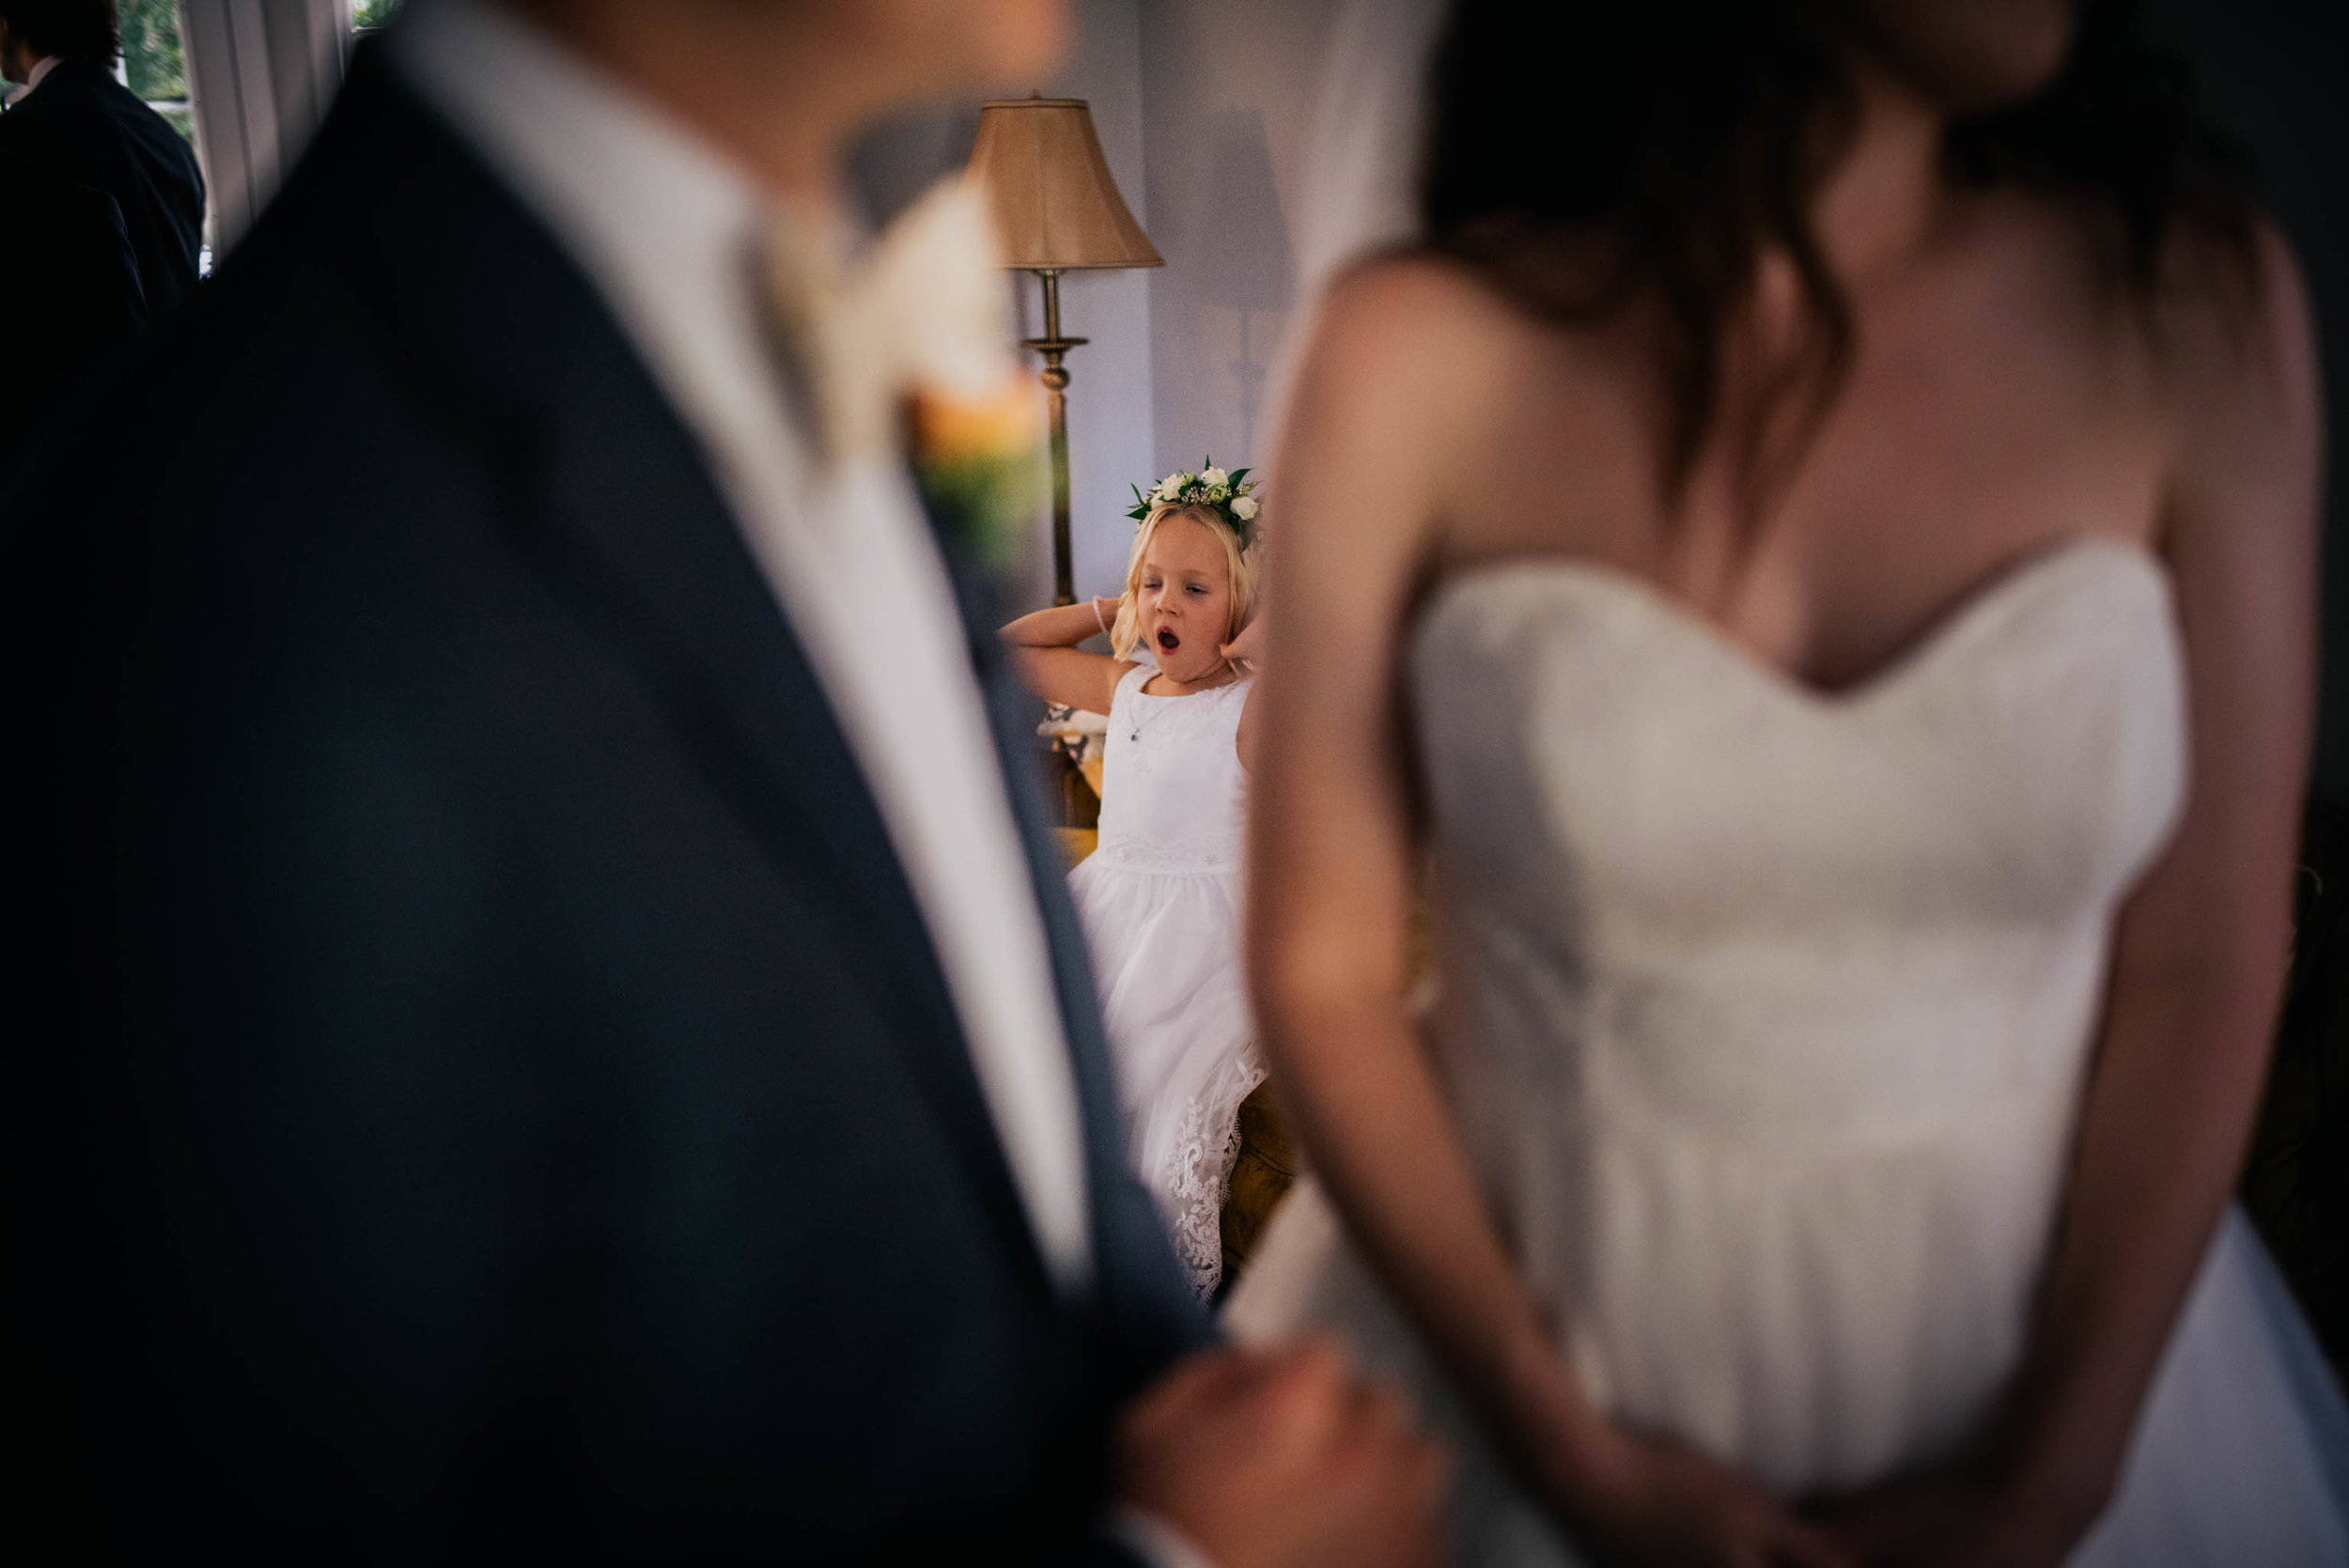 flower girl yawning in the background before the wedding ceremony